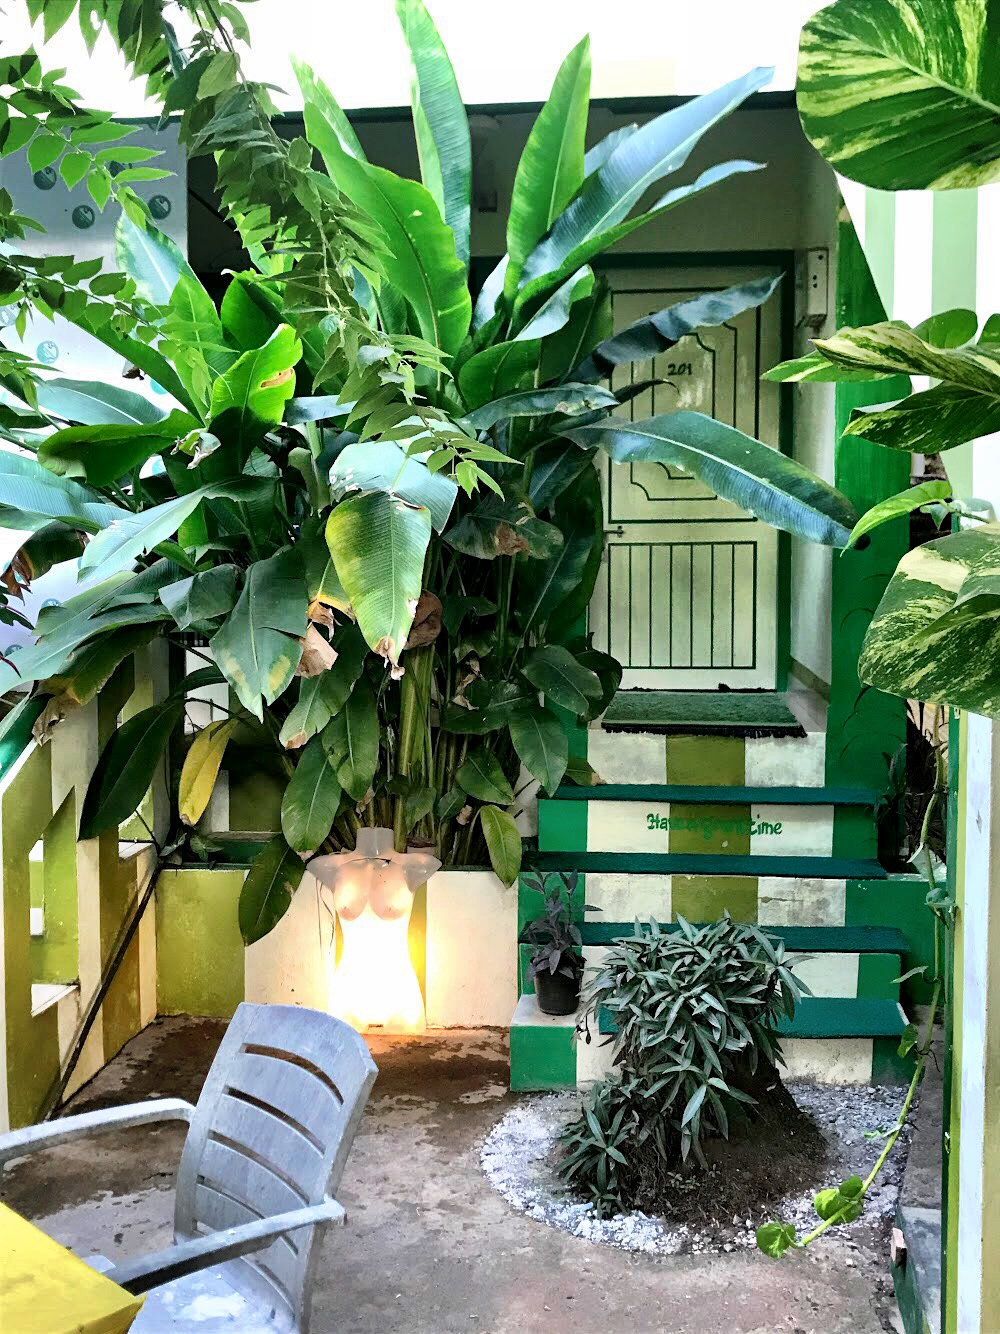 The garden at Johny's is filled with lush greenery — and the occasional monkey